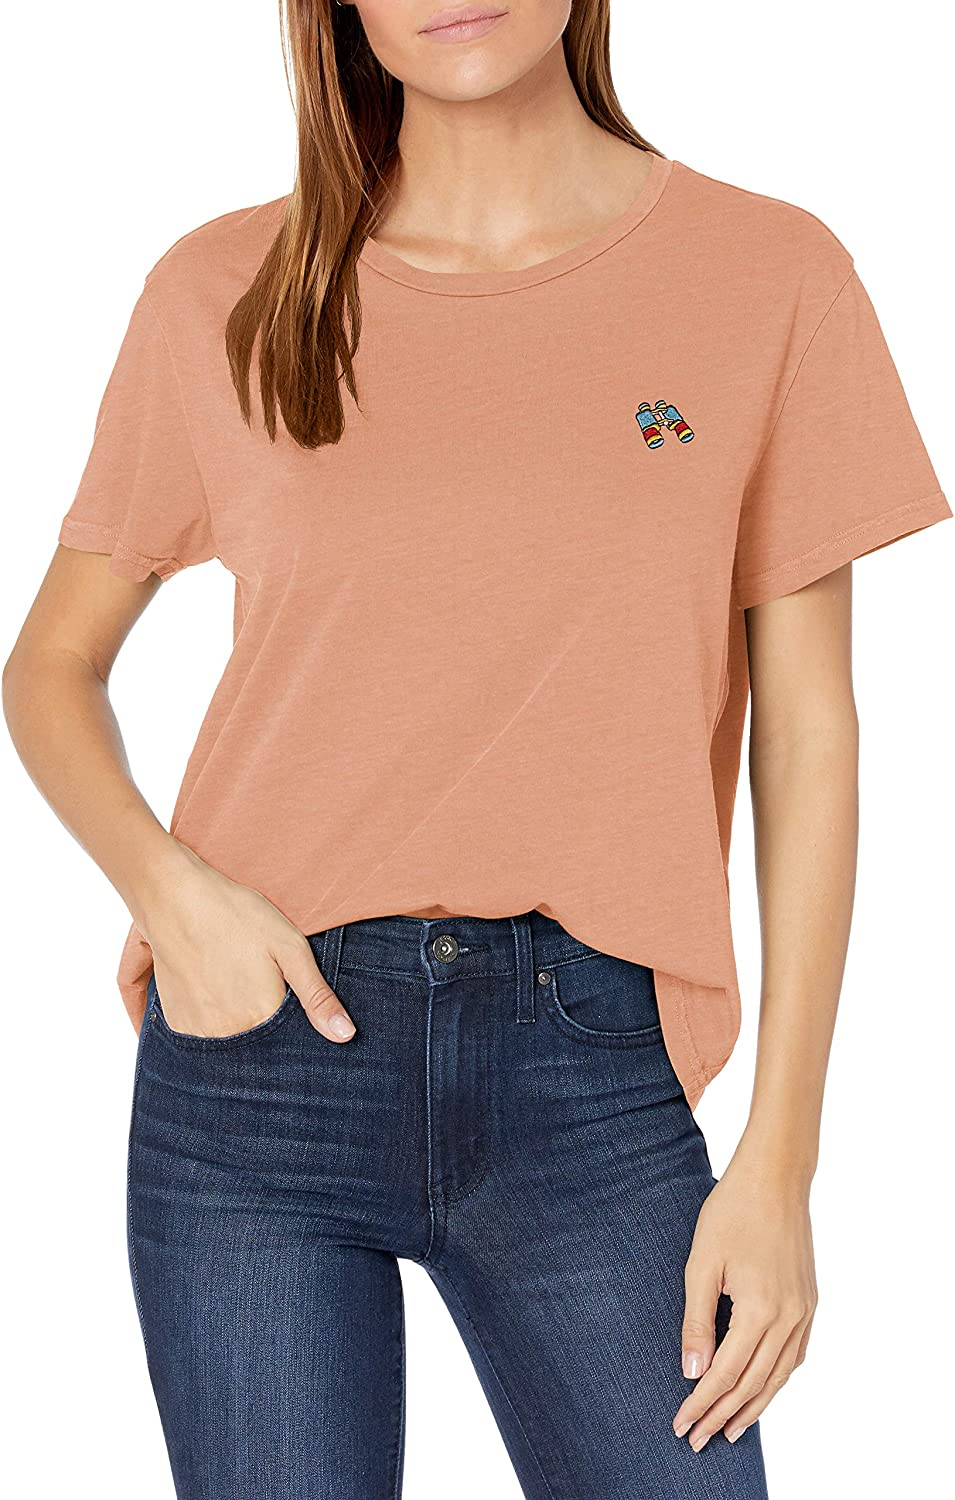 Nudie Jeans Classic T-Shirt Ranking TOP9 Women's